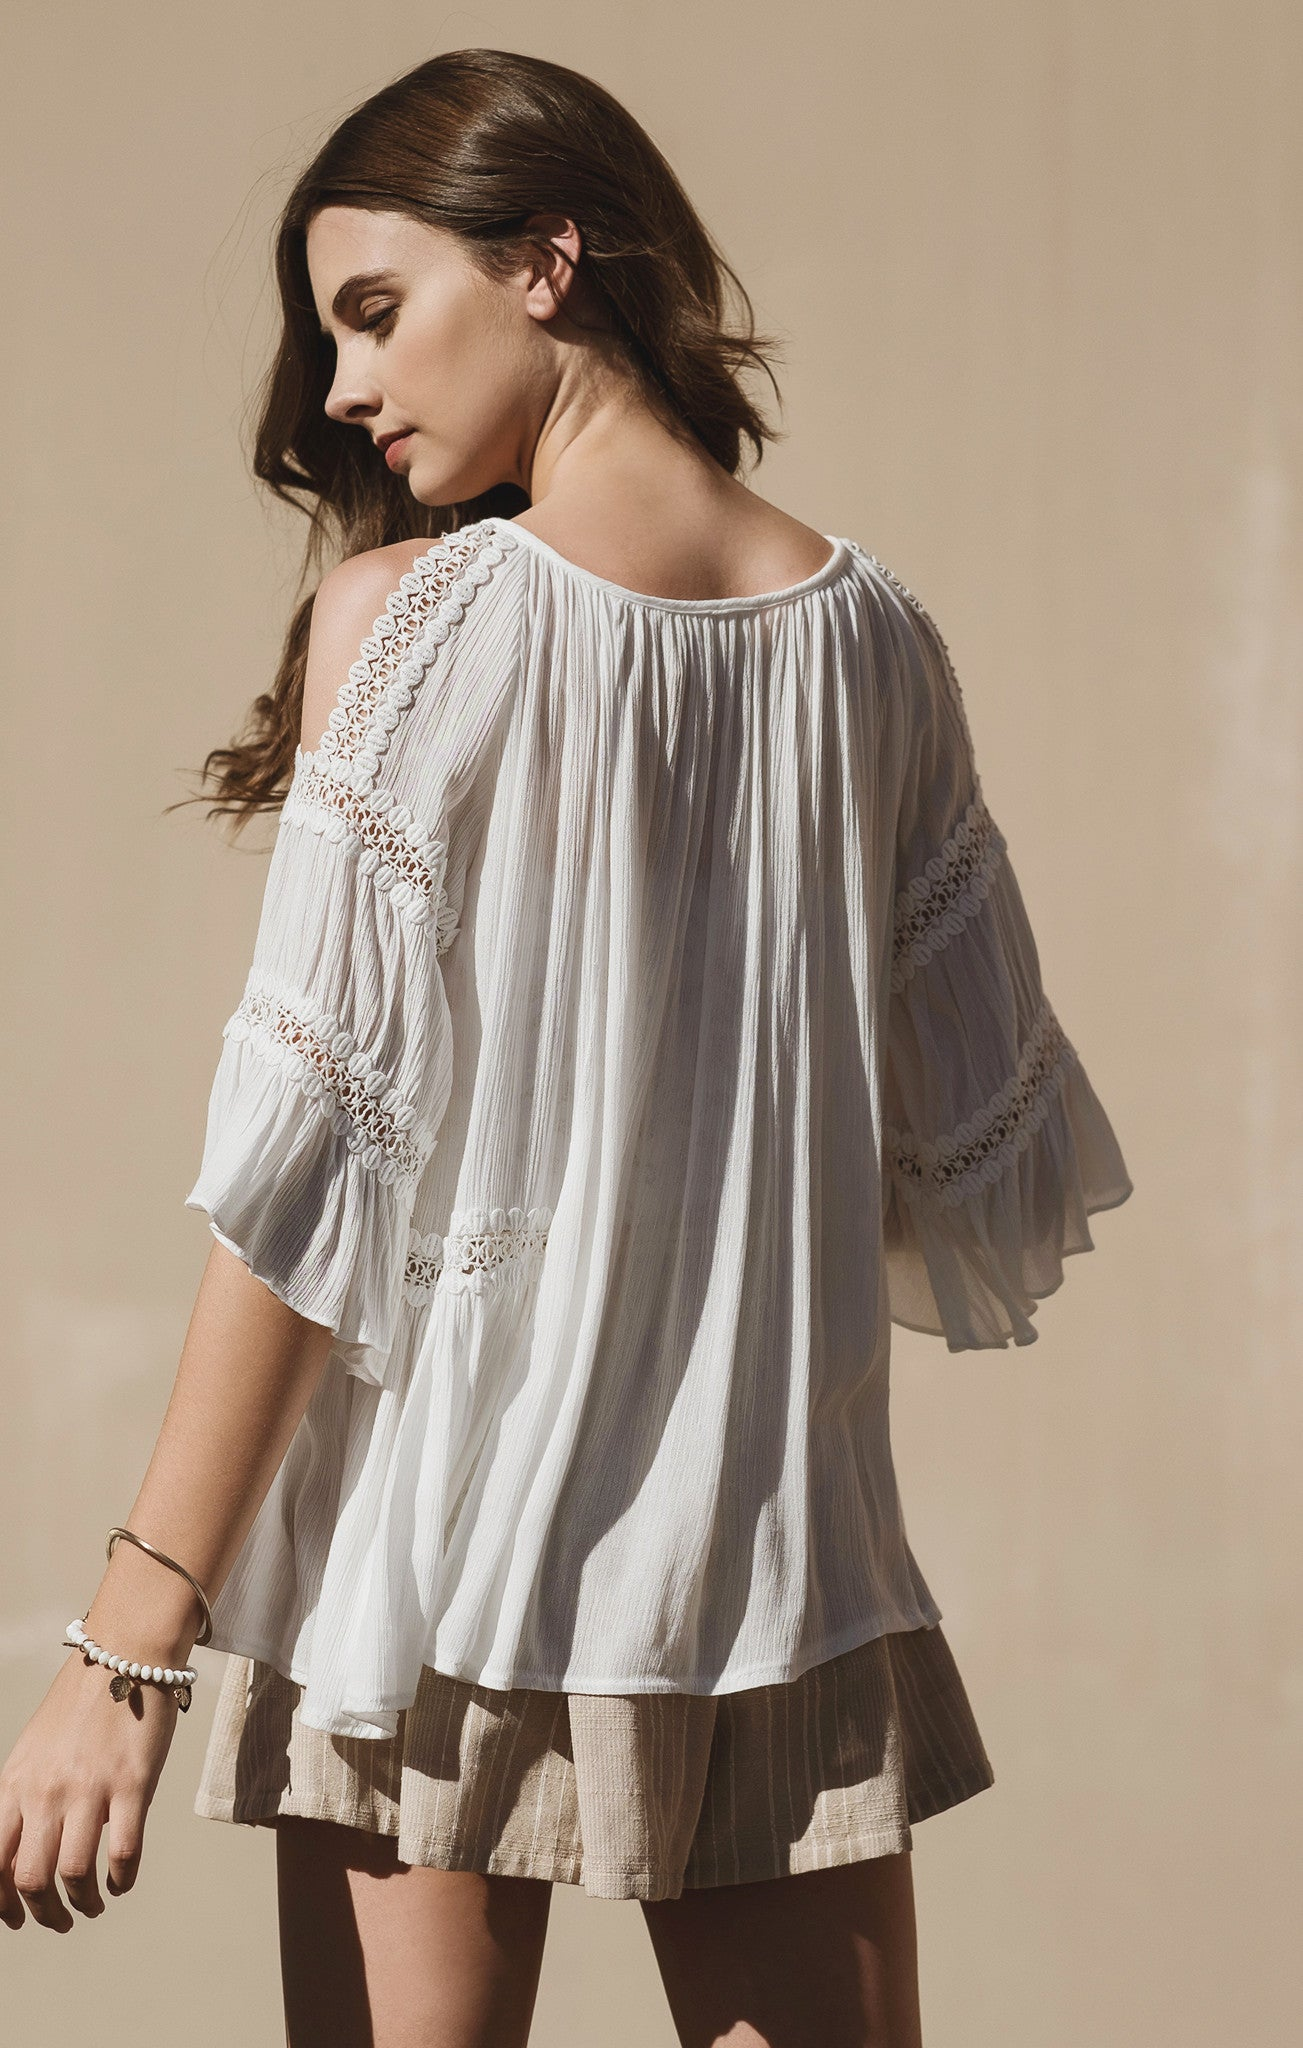 COLD SHOULDER DRAPPERY TOP WITH TRIM